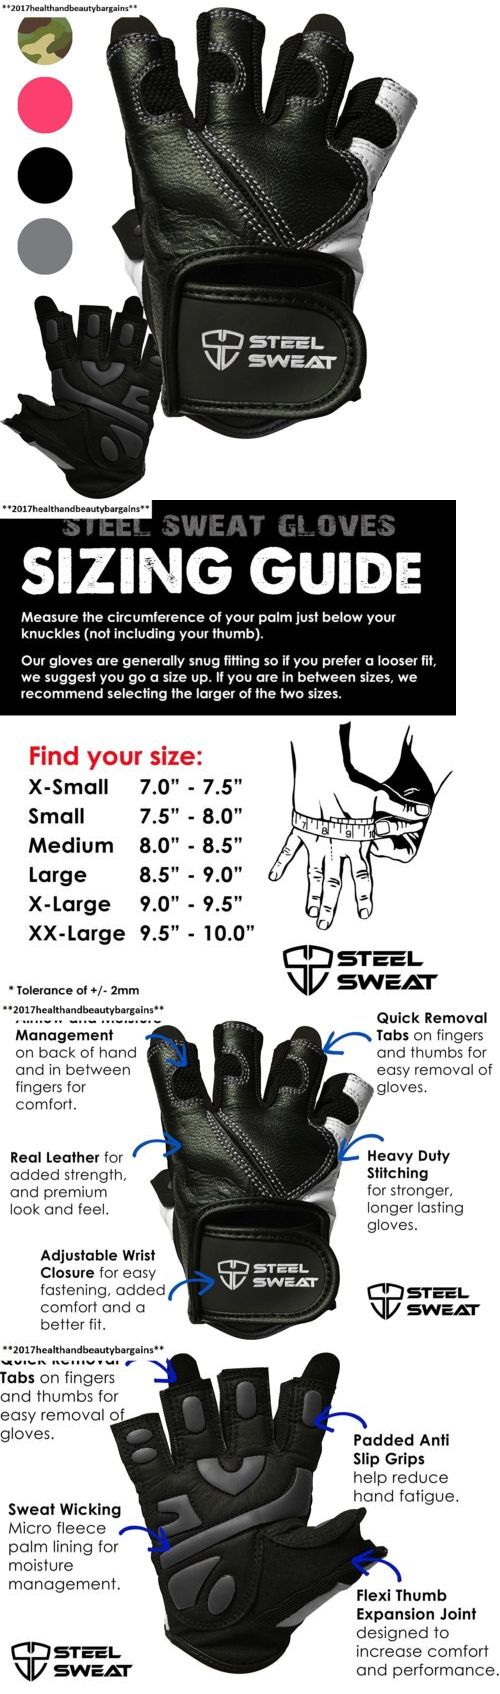 Motorcycle gloves to prevent numbness - Gloves Straps And Hooks 179820 Weightlifting Gloves Best For Workout Gym Fitness Training And